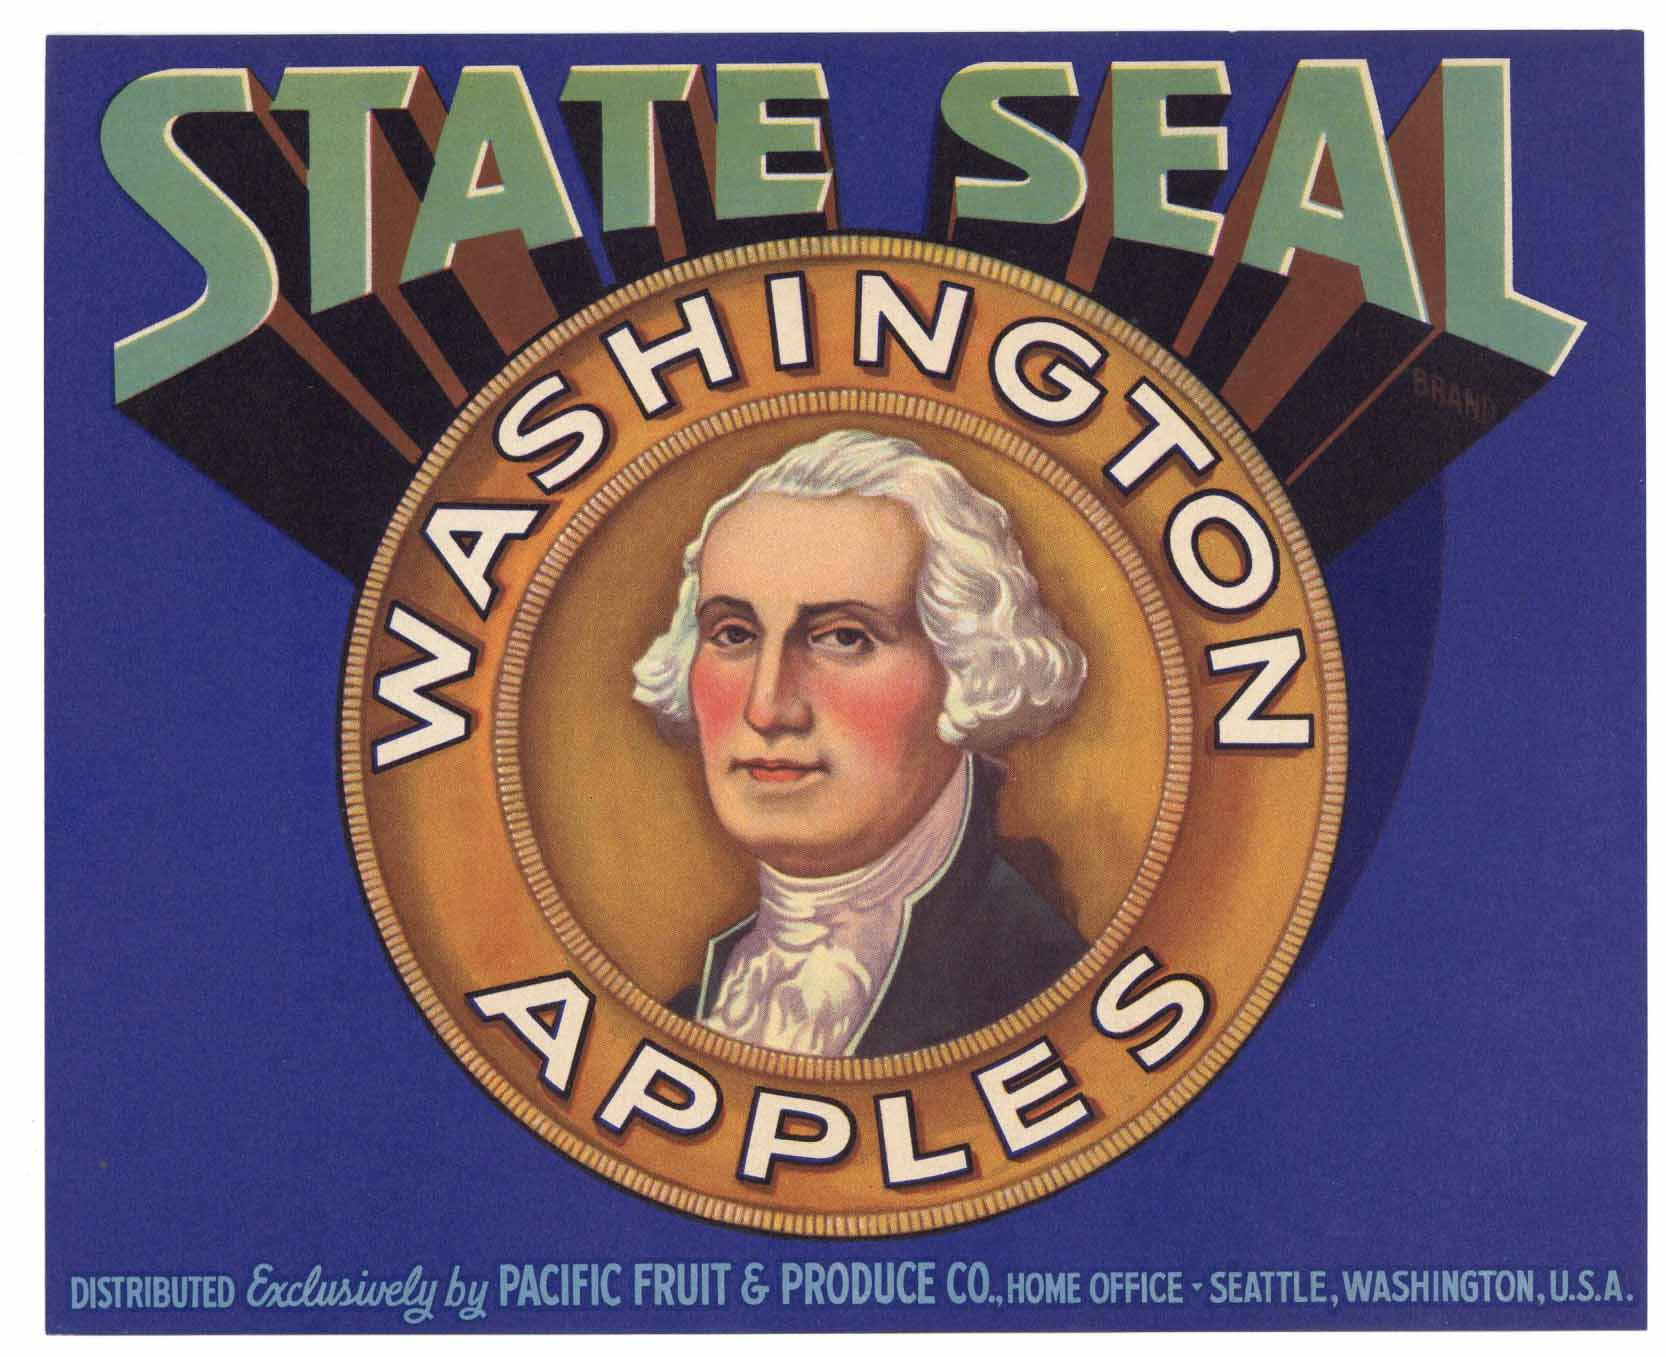 State Seal Brand Vintage Washington Apple Crate Label, gp